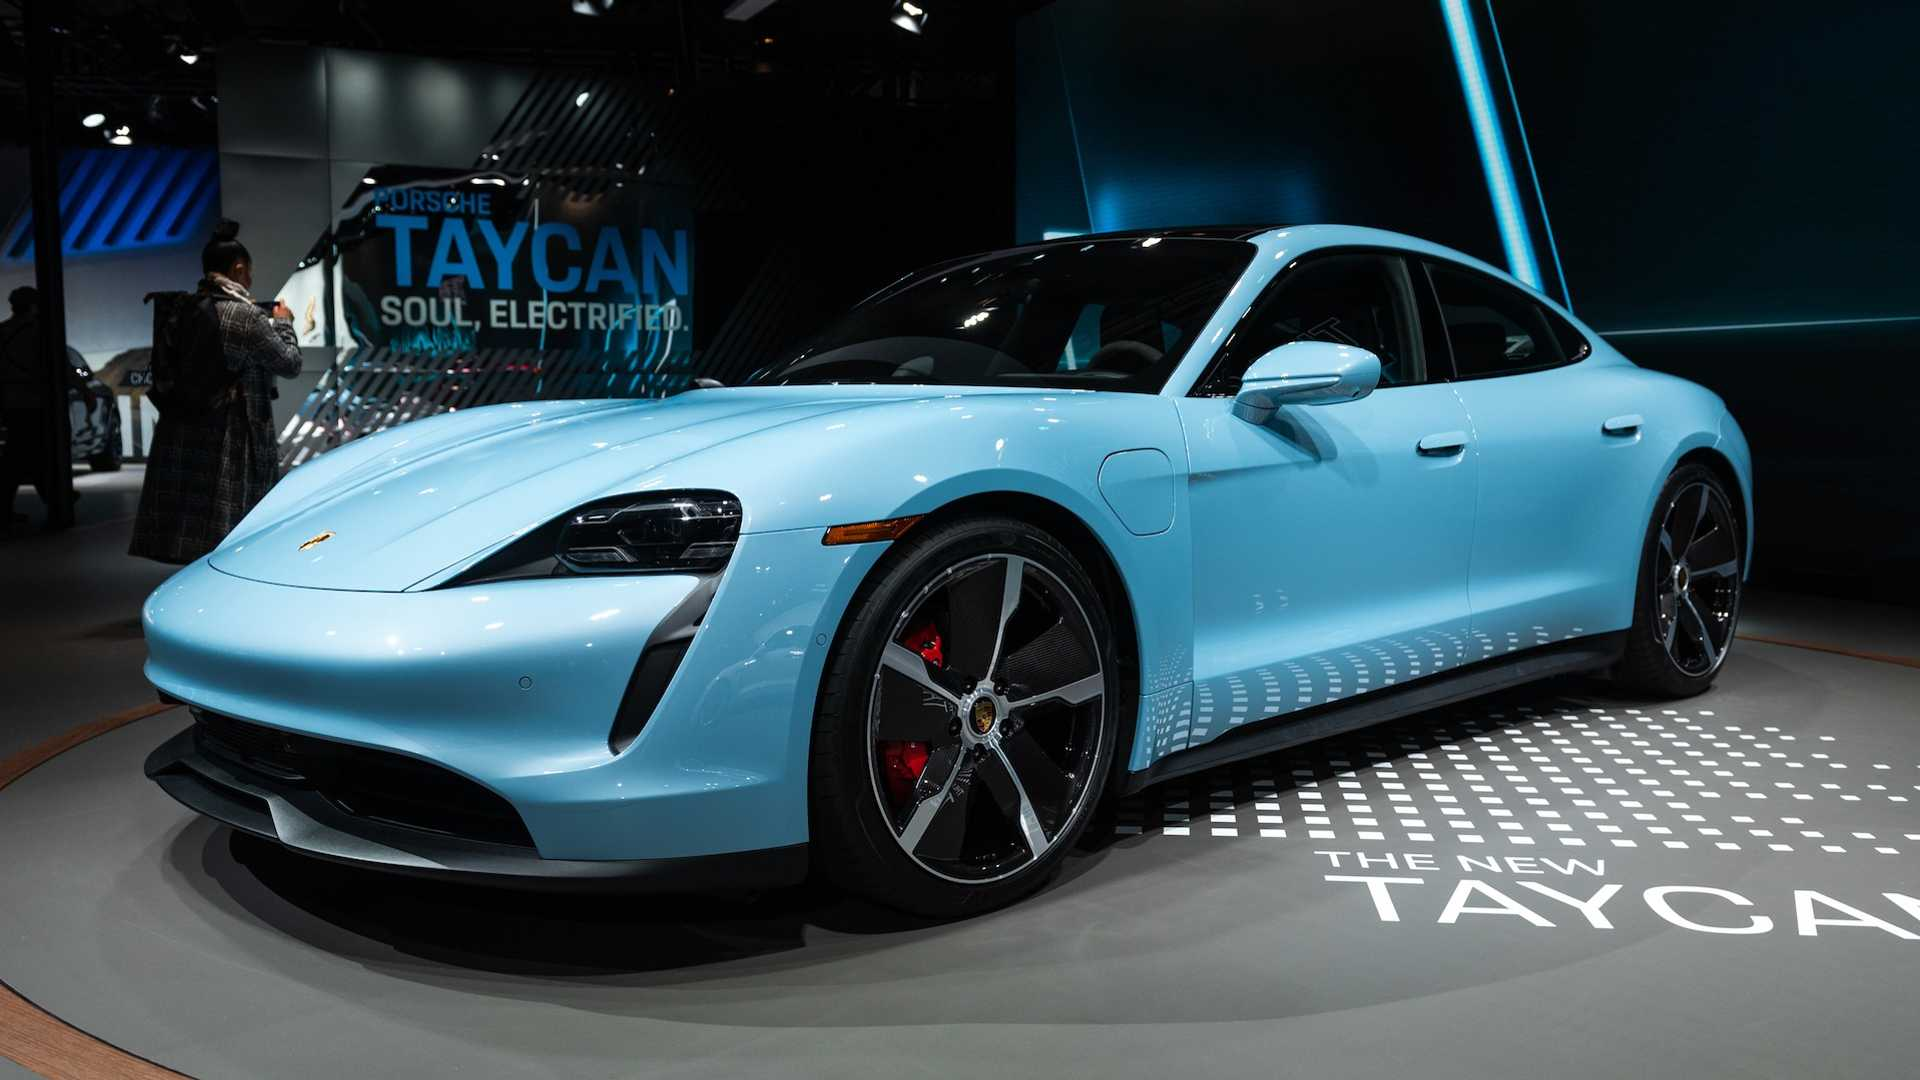 Porsche Taycan 4s Shows Up In La Shows Off Its Striking Blue Paint